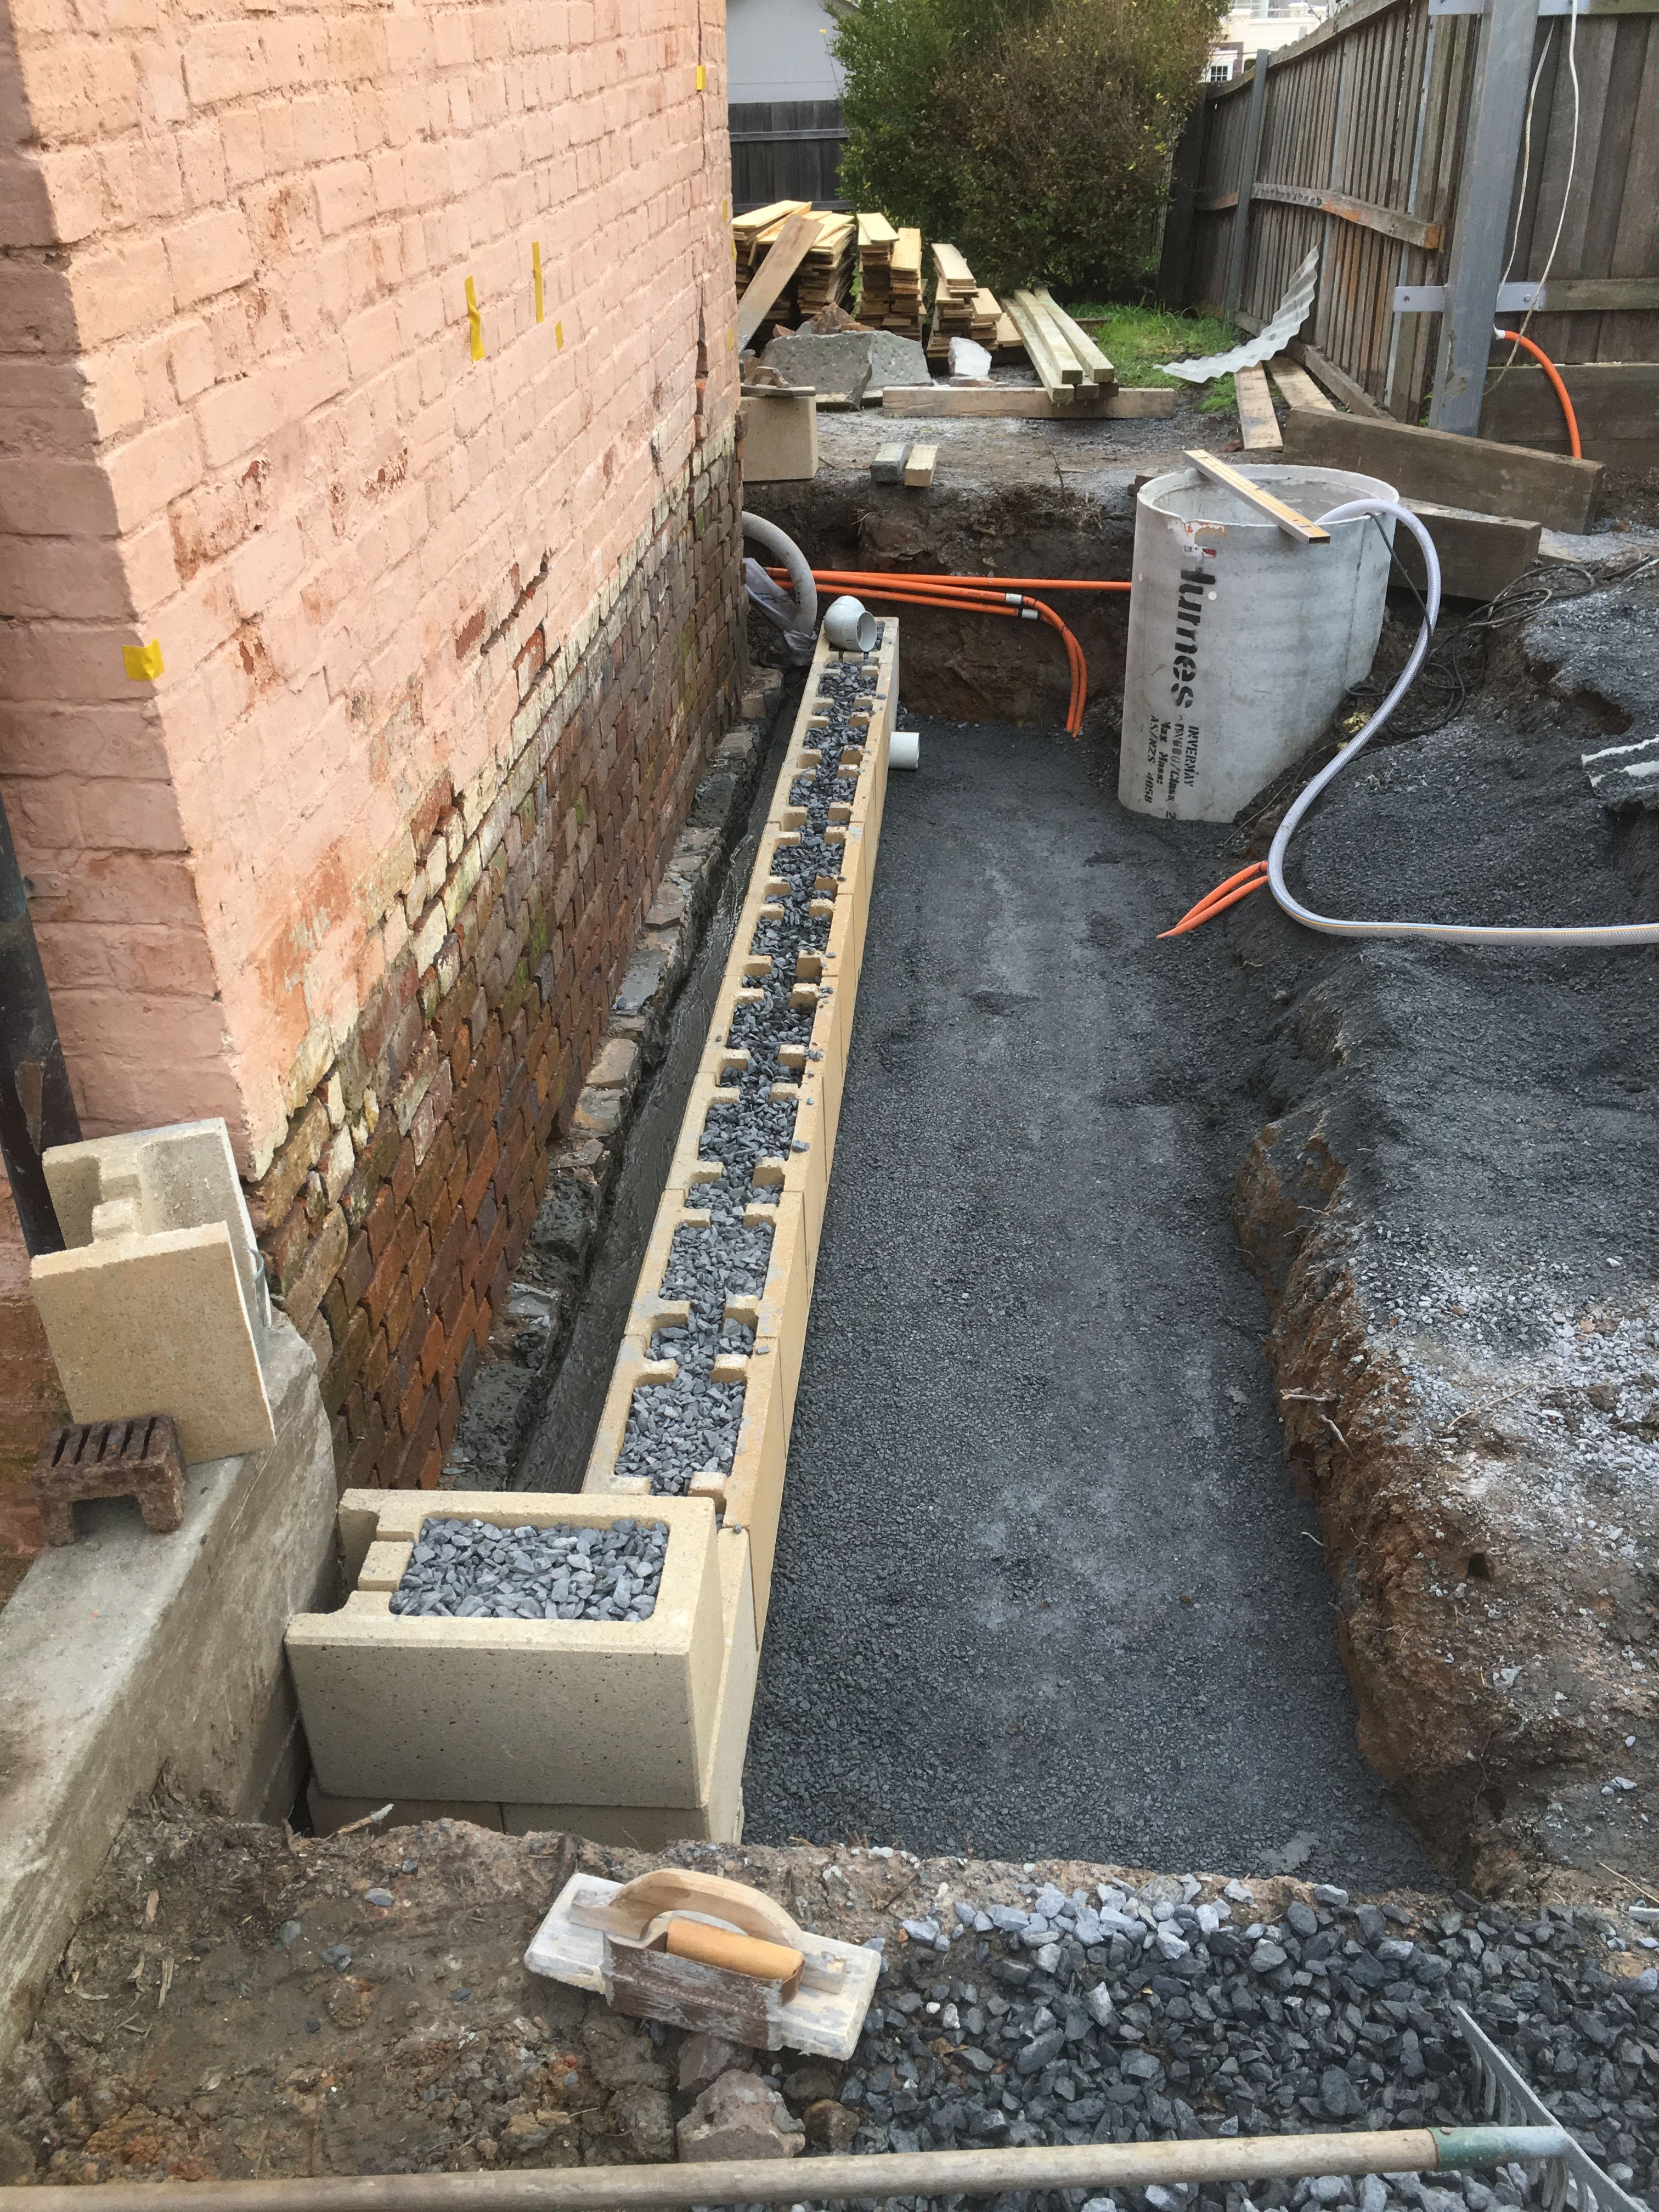 Property Drainage Works Retaining Wall Under Construction To Allow An Air Gap Between The Foundat Waterproofing Basement Yard Drainage Retaining Wall Drainage